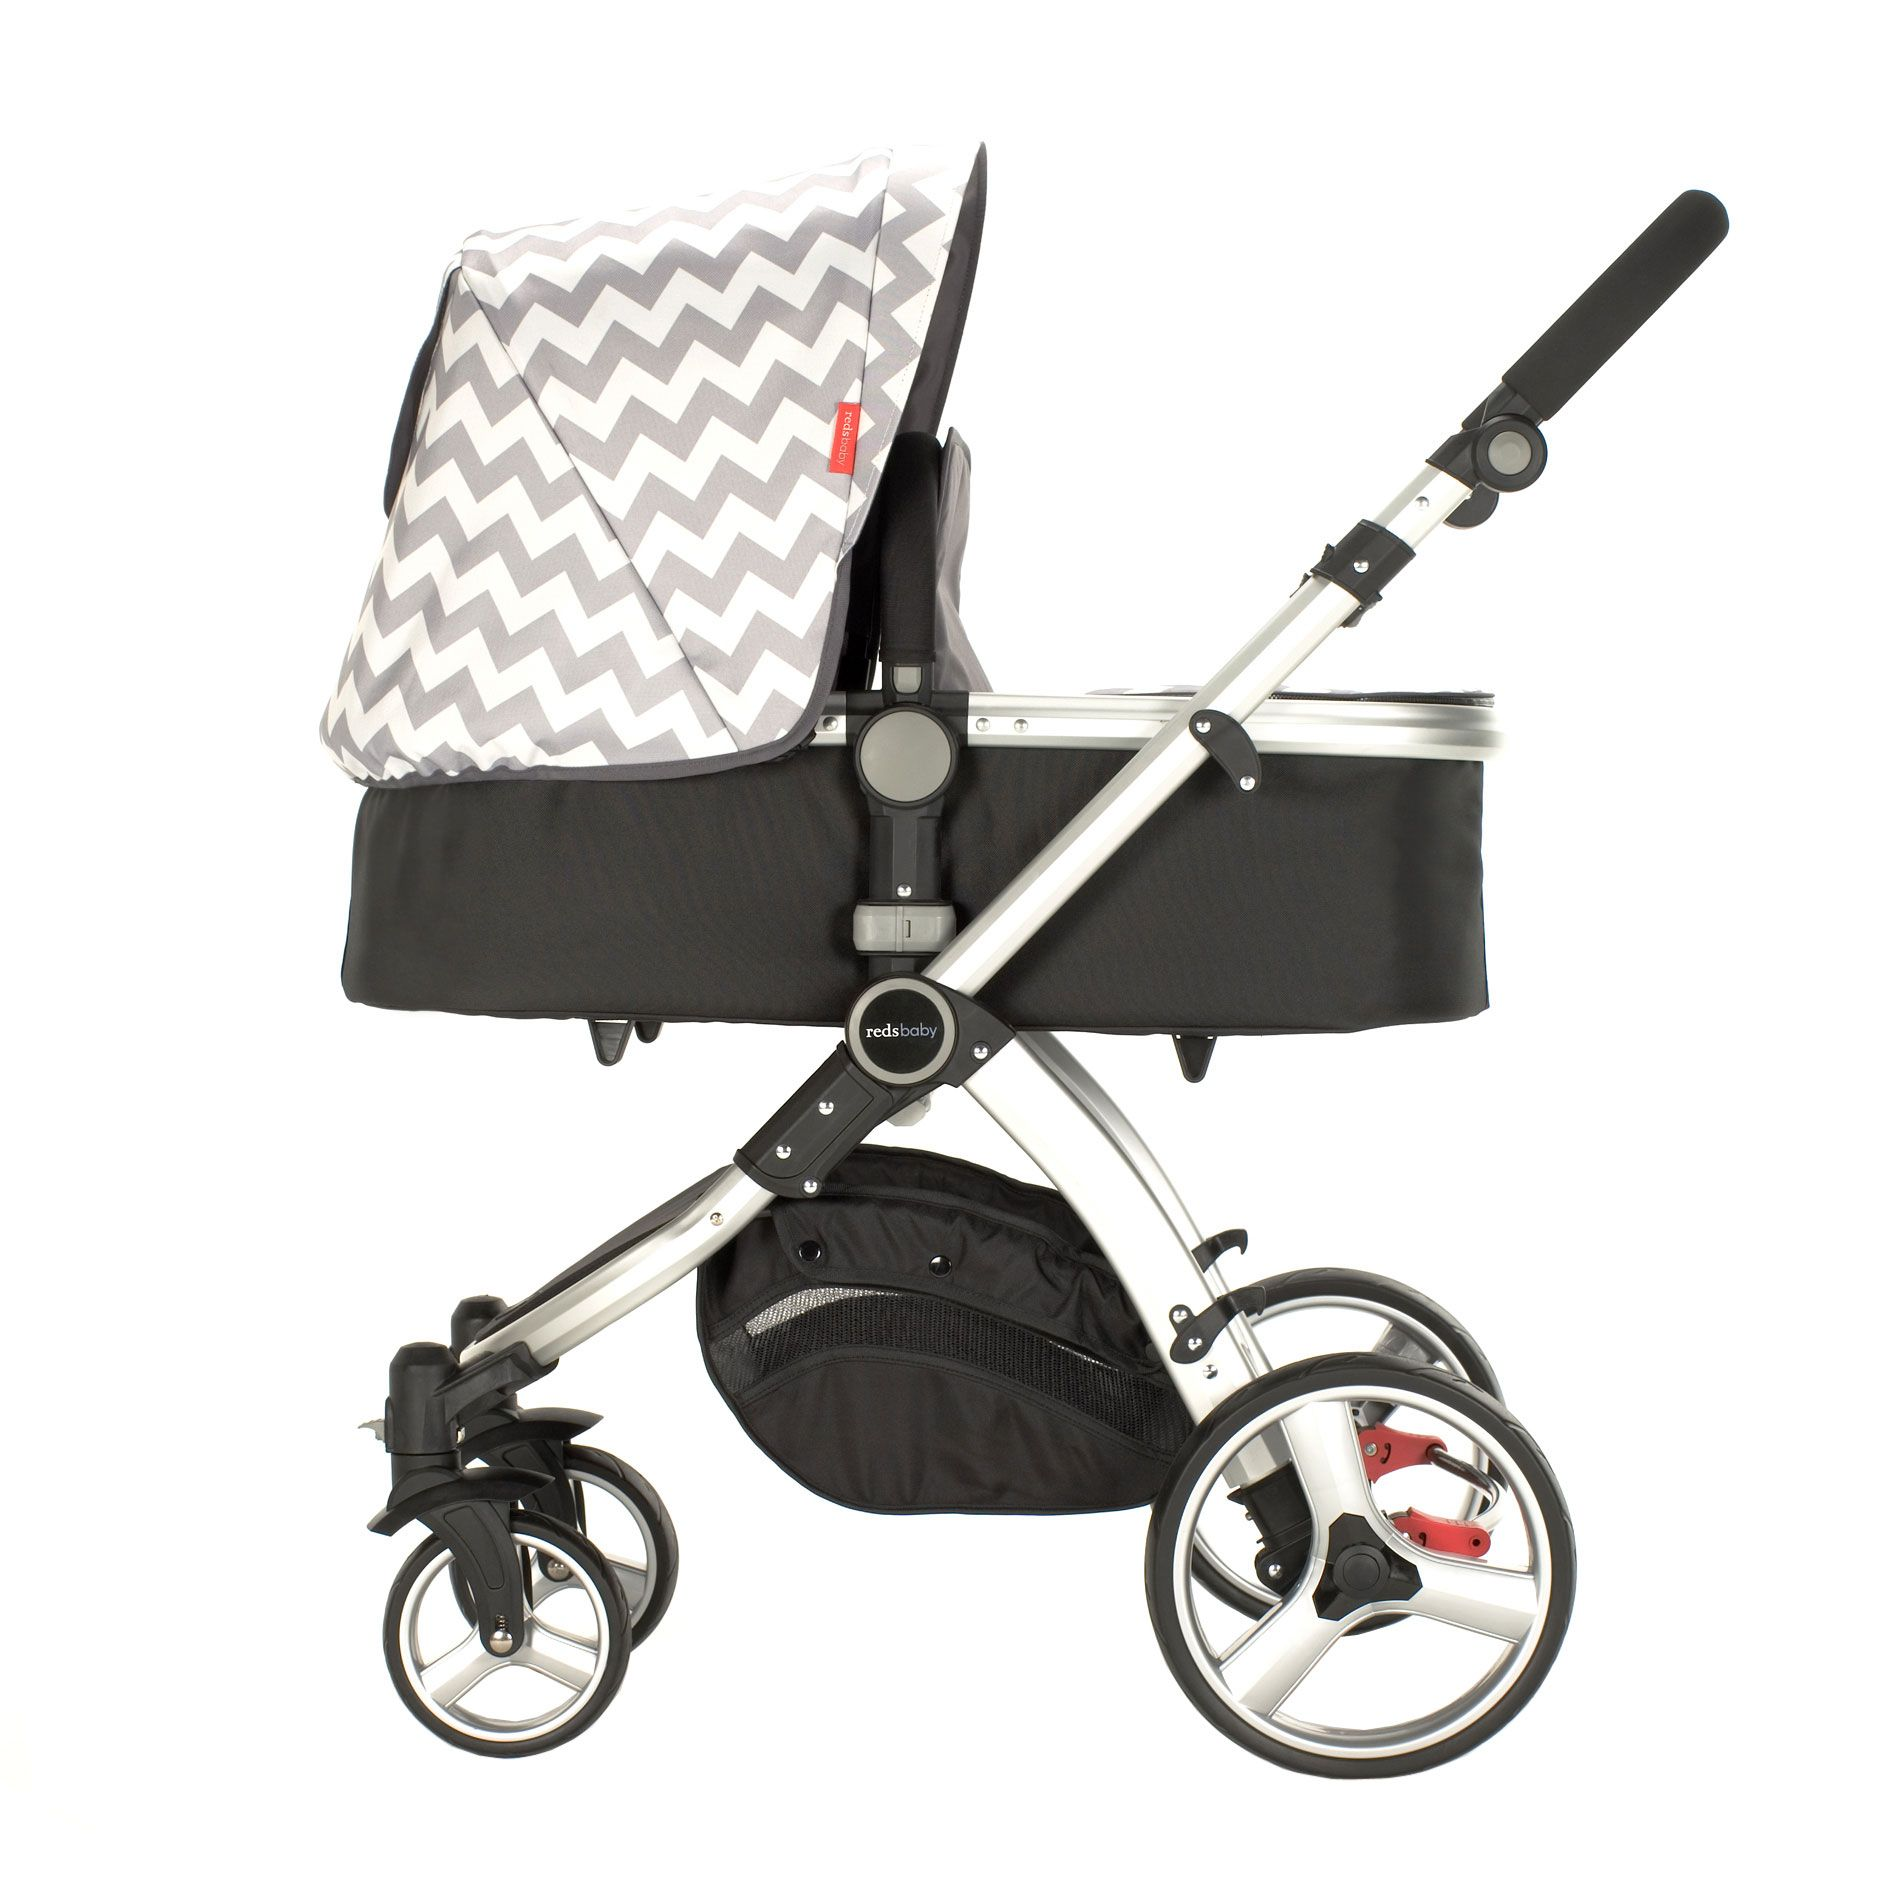 Redsbaby Bounce The Utlimate AllInOne Stroller/ Pram